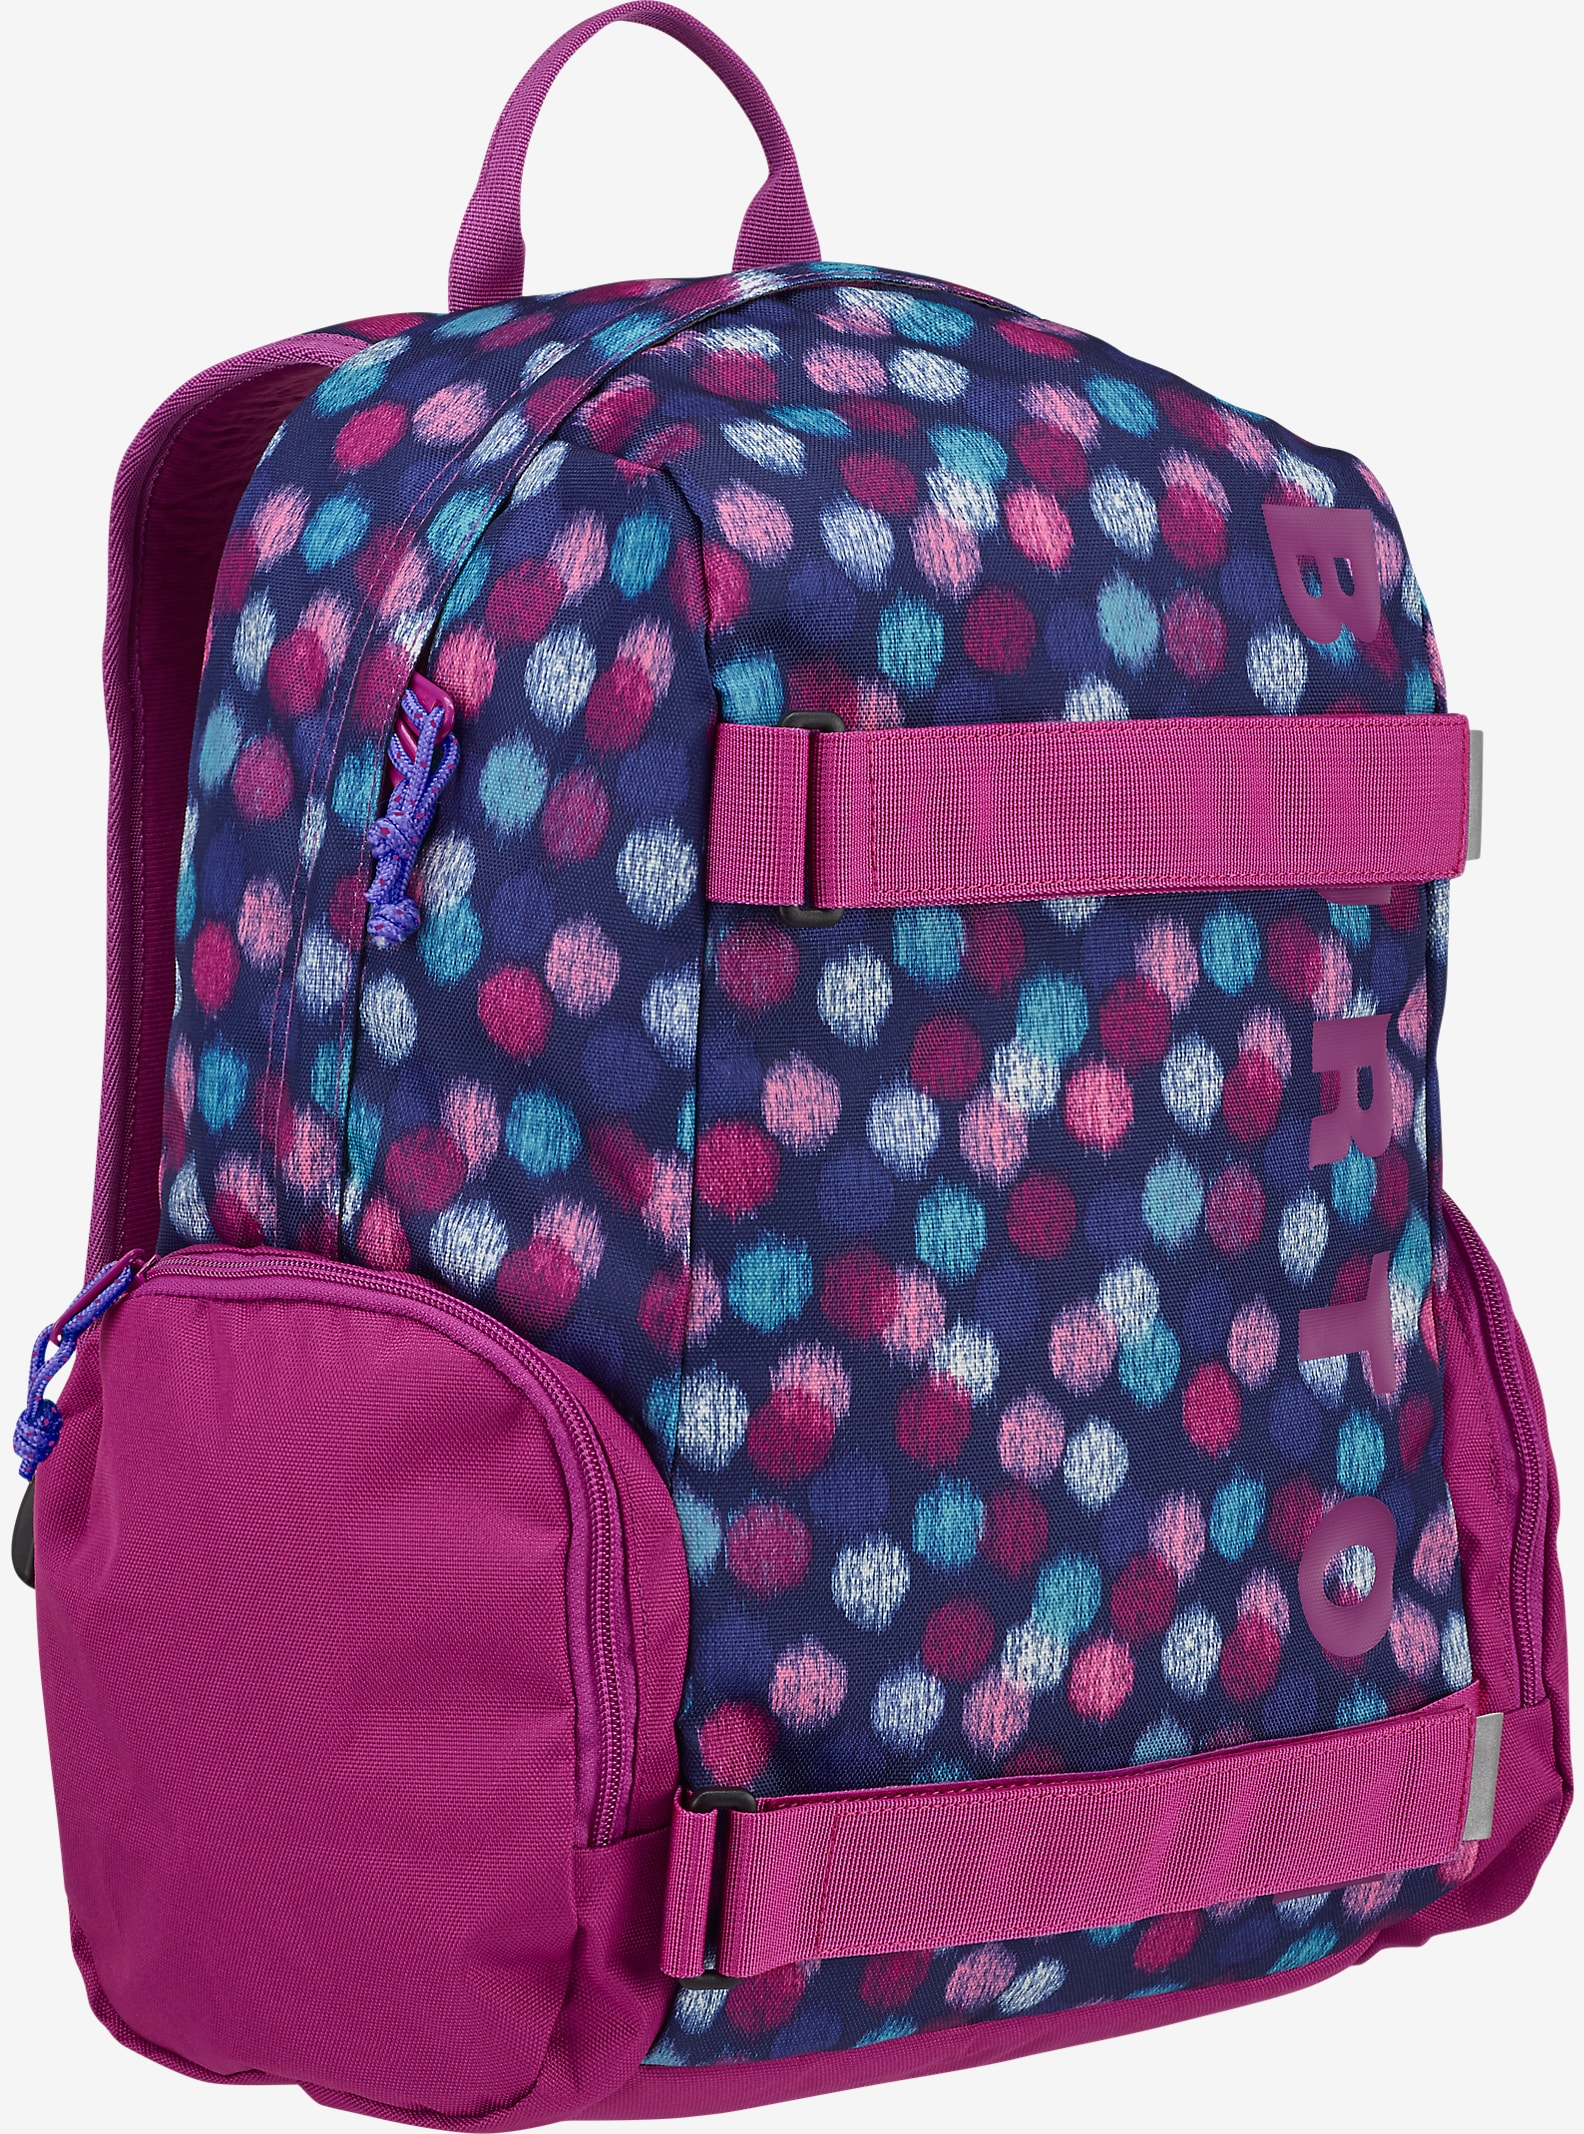 Burton Kids' Emphasis Backpack shown in Ikat Dot Print